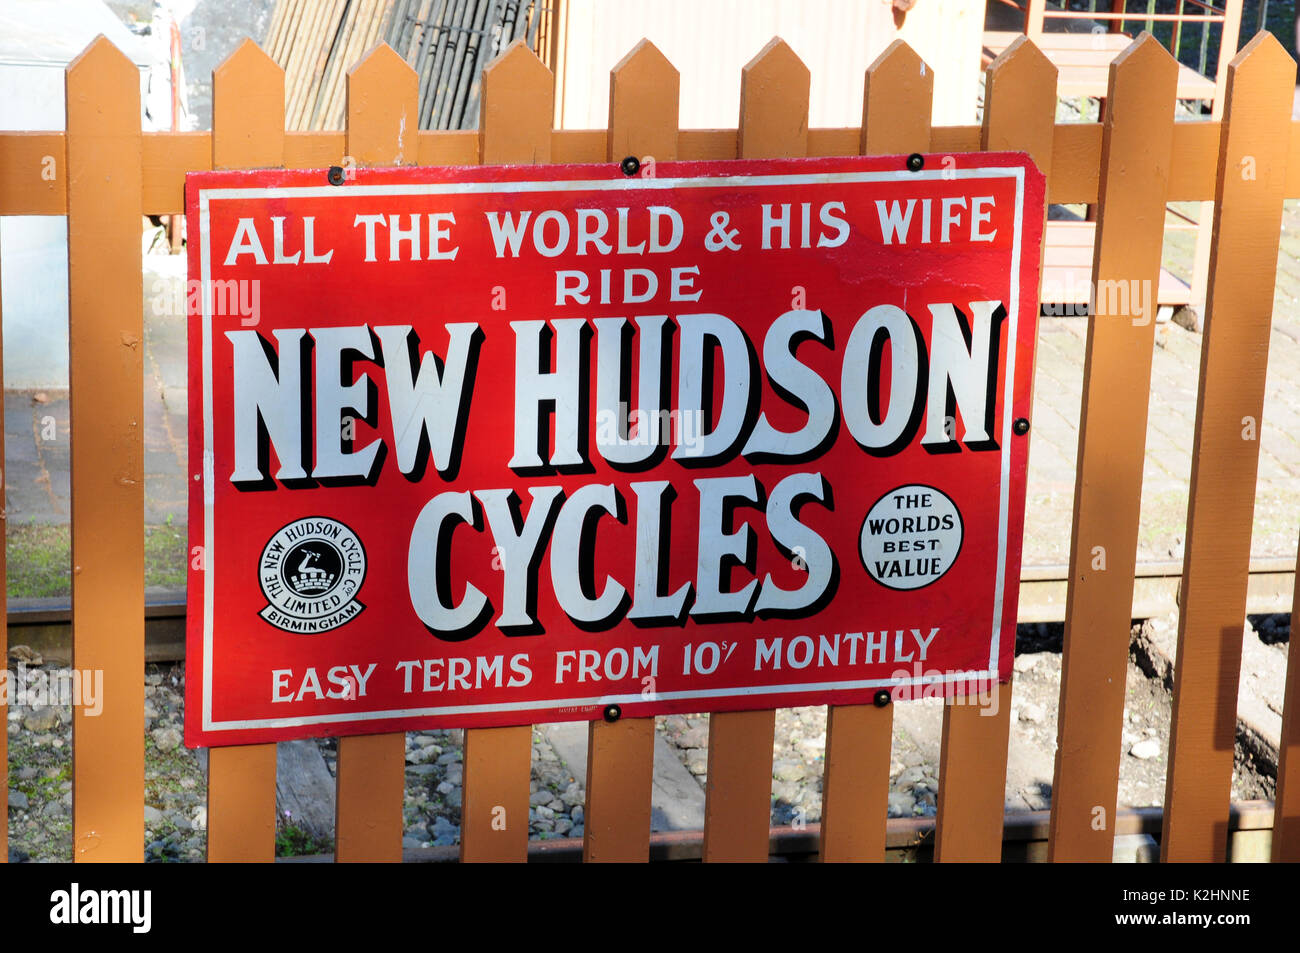 Preserved metal advertisement, seen the Severn Valley Railway, Shropshire. - Stock Image